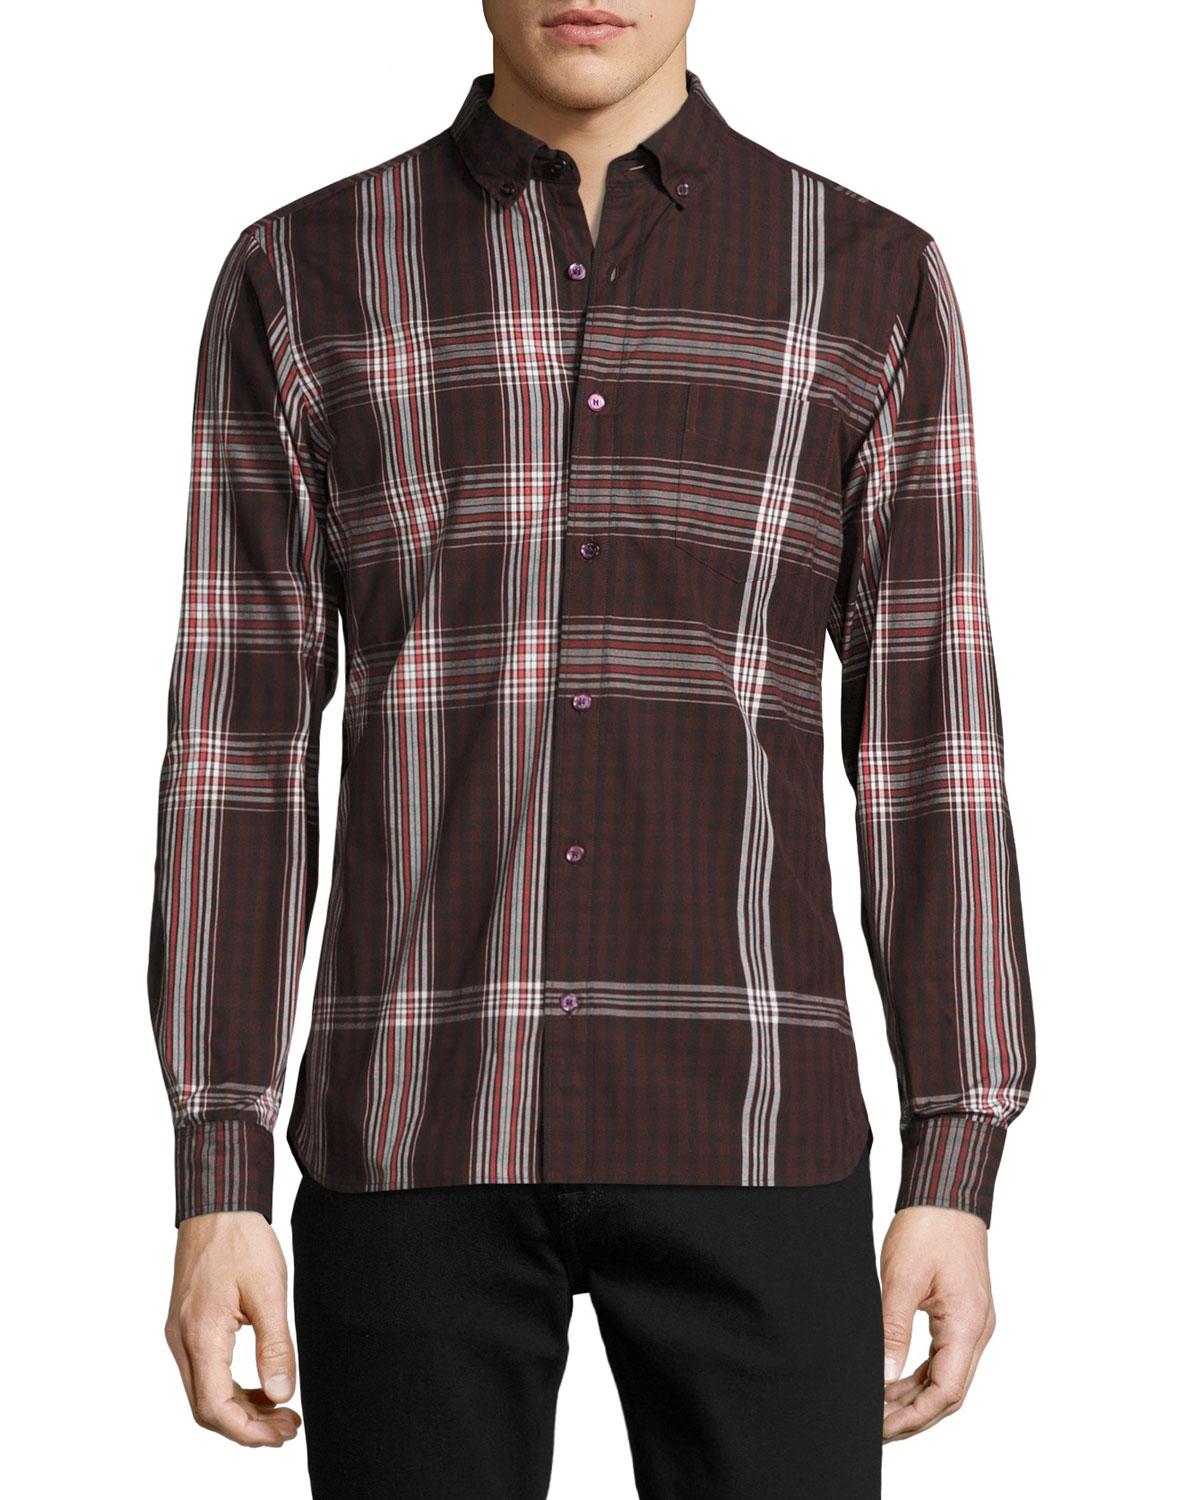 Blackrock Check Poplin Shirt, Dark Elderberry